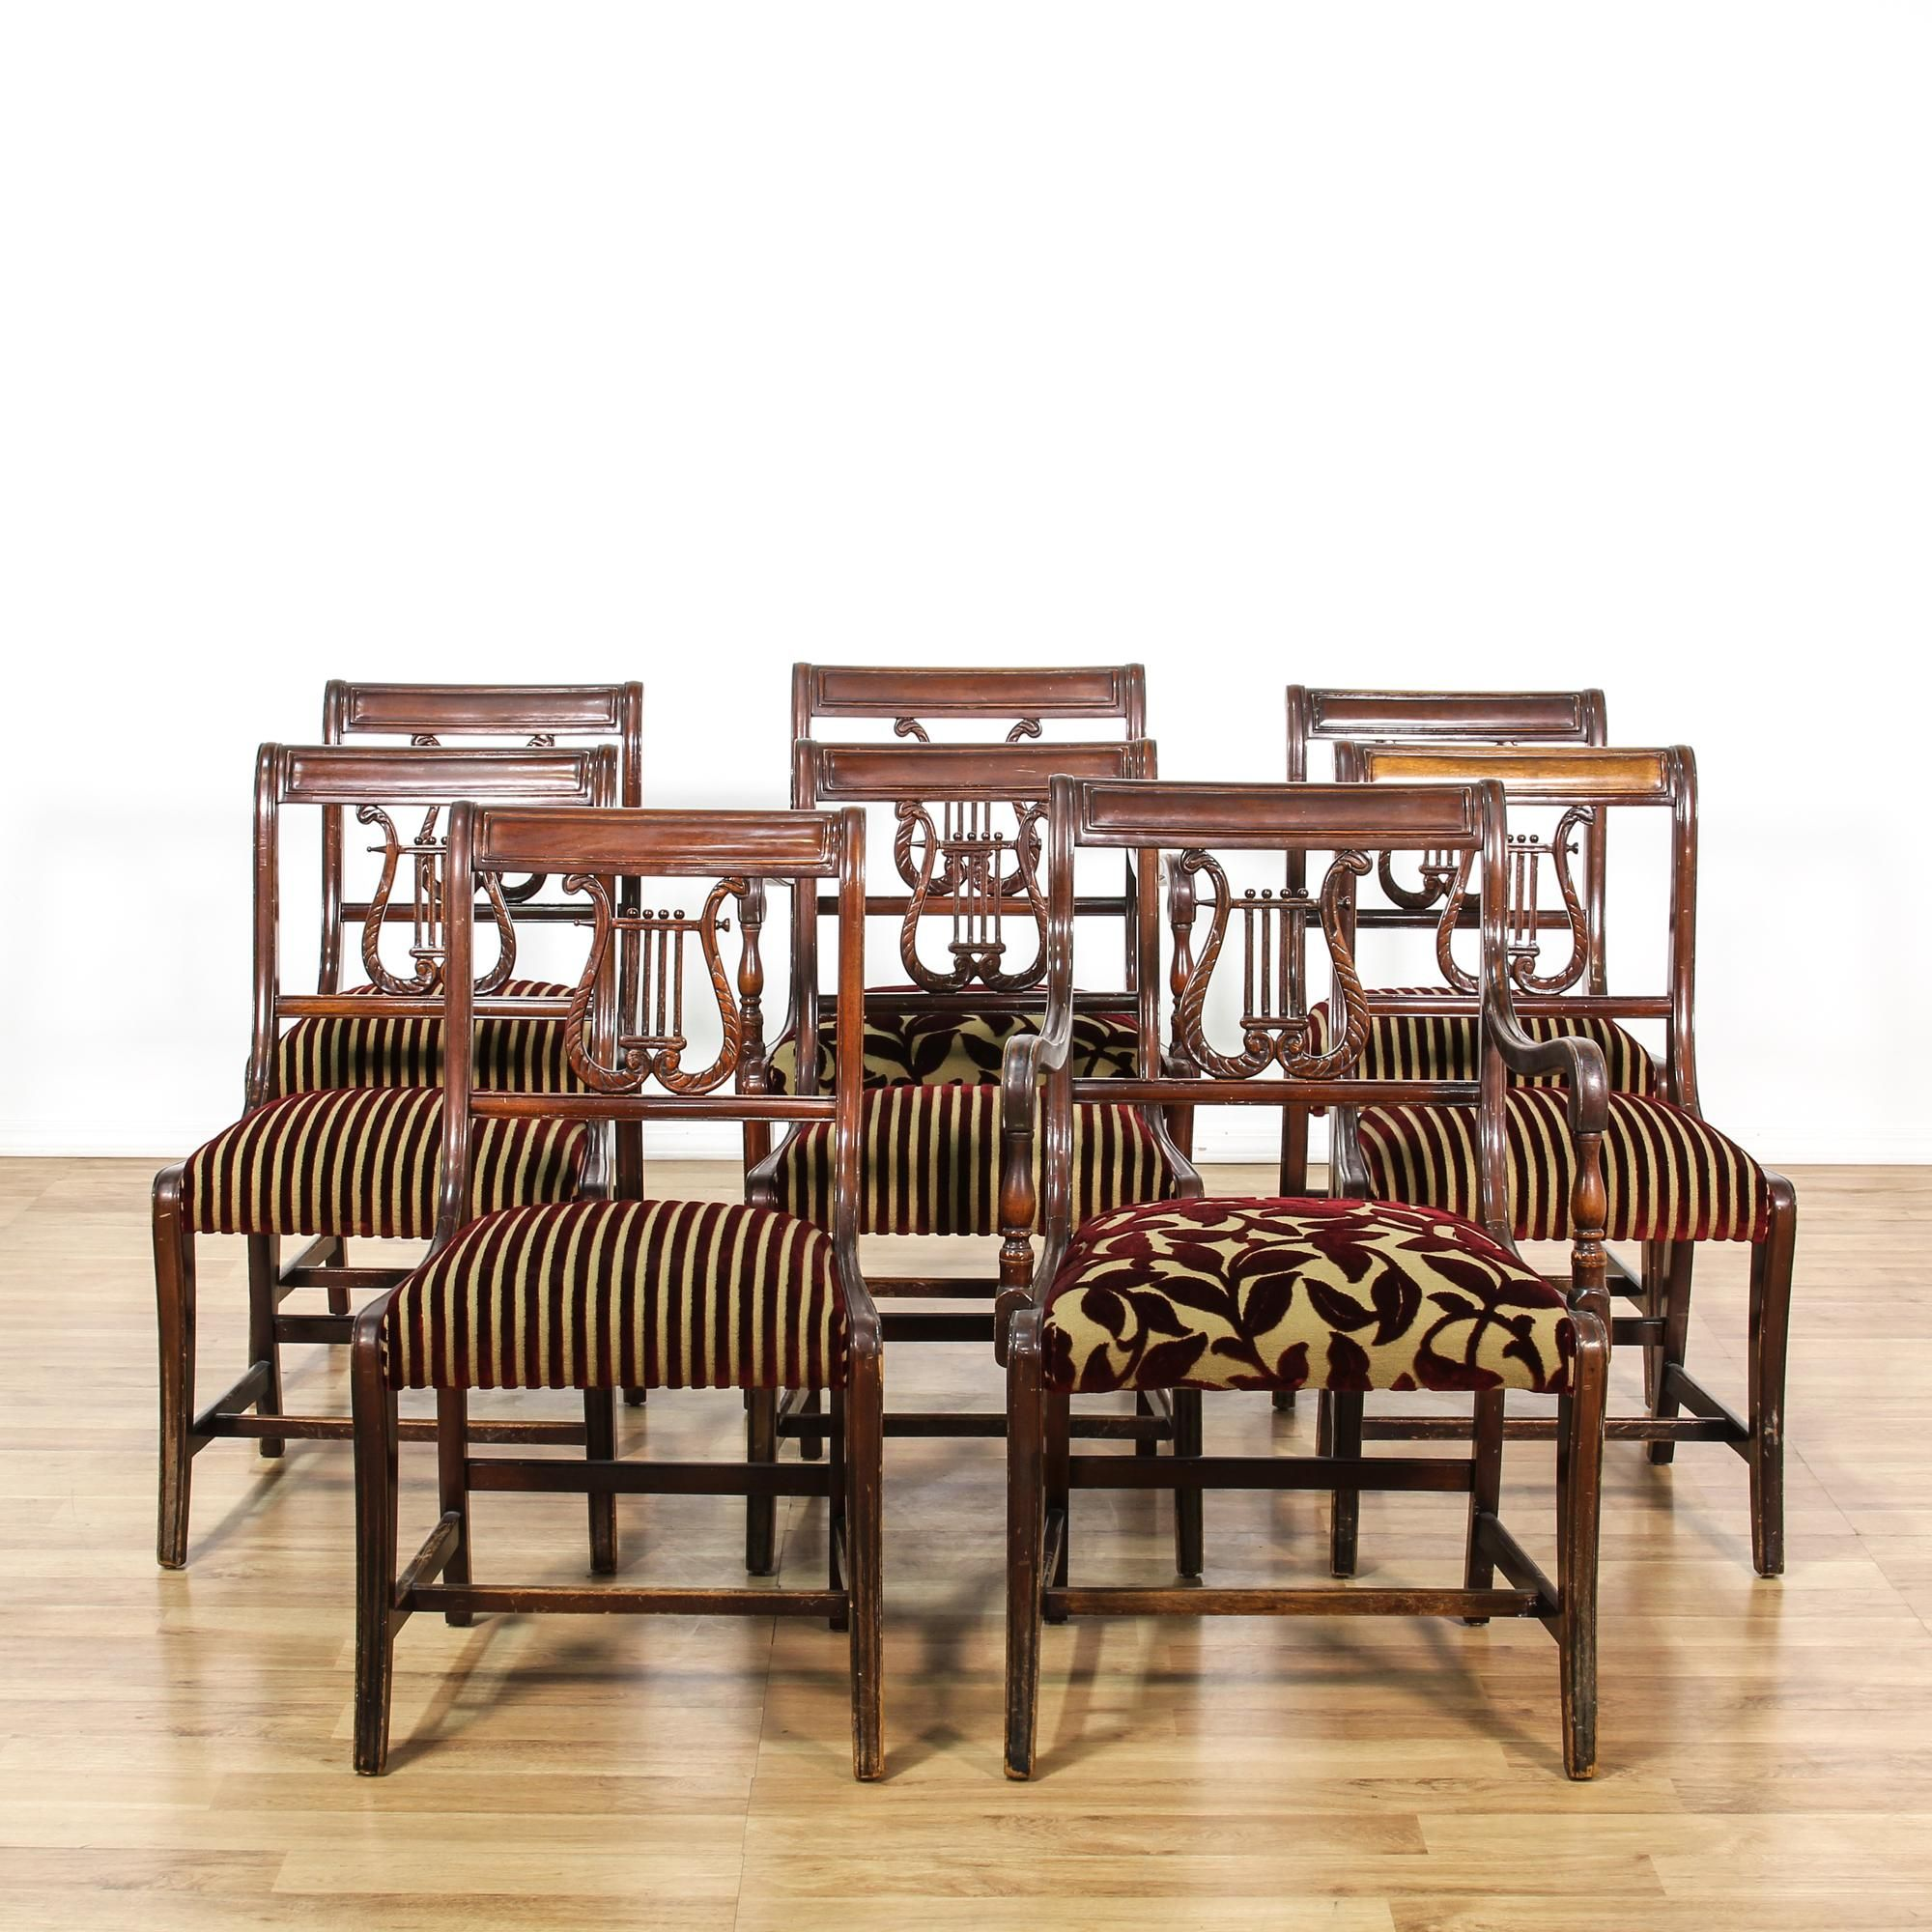 This set of 8 Duncan Phyfe dining chairs are featured in a solid